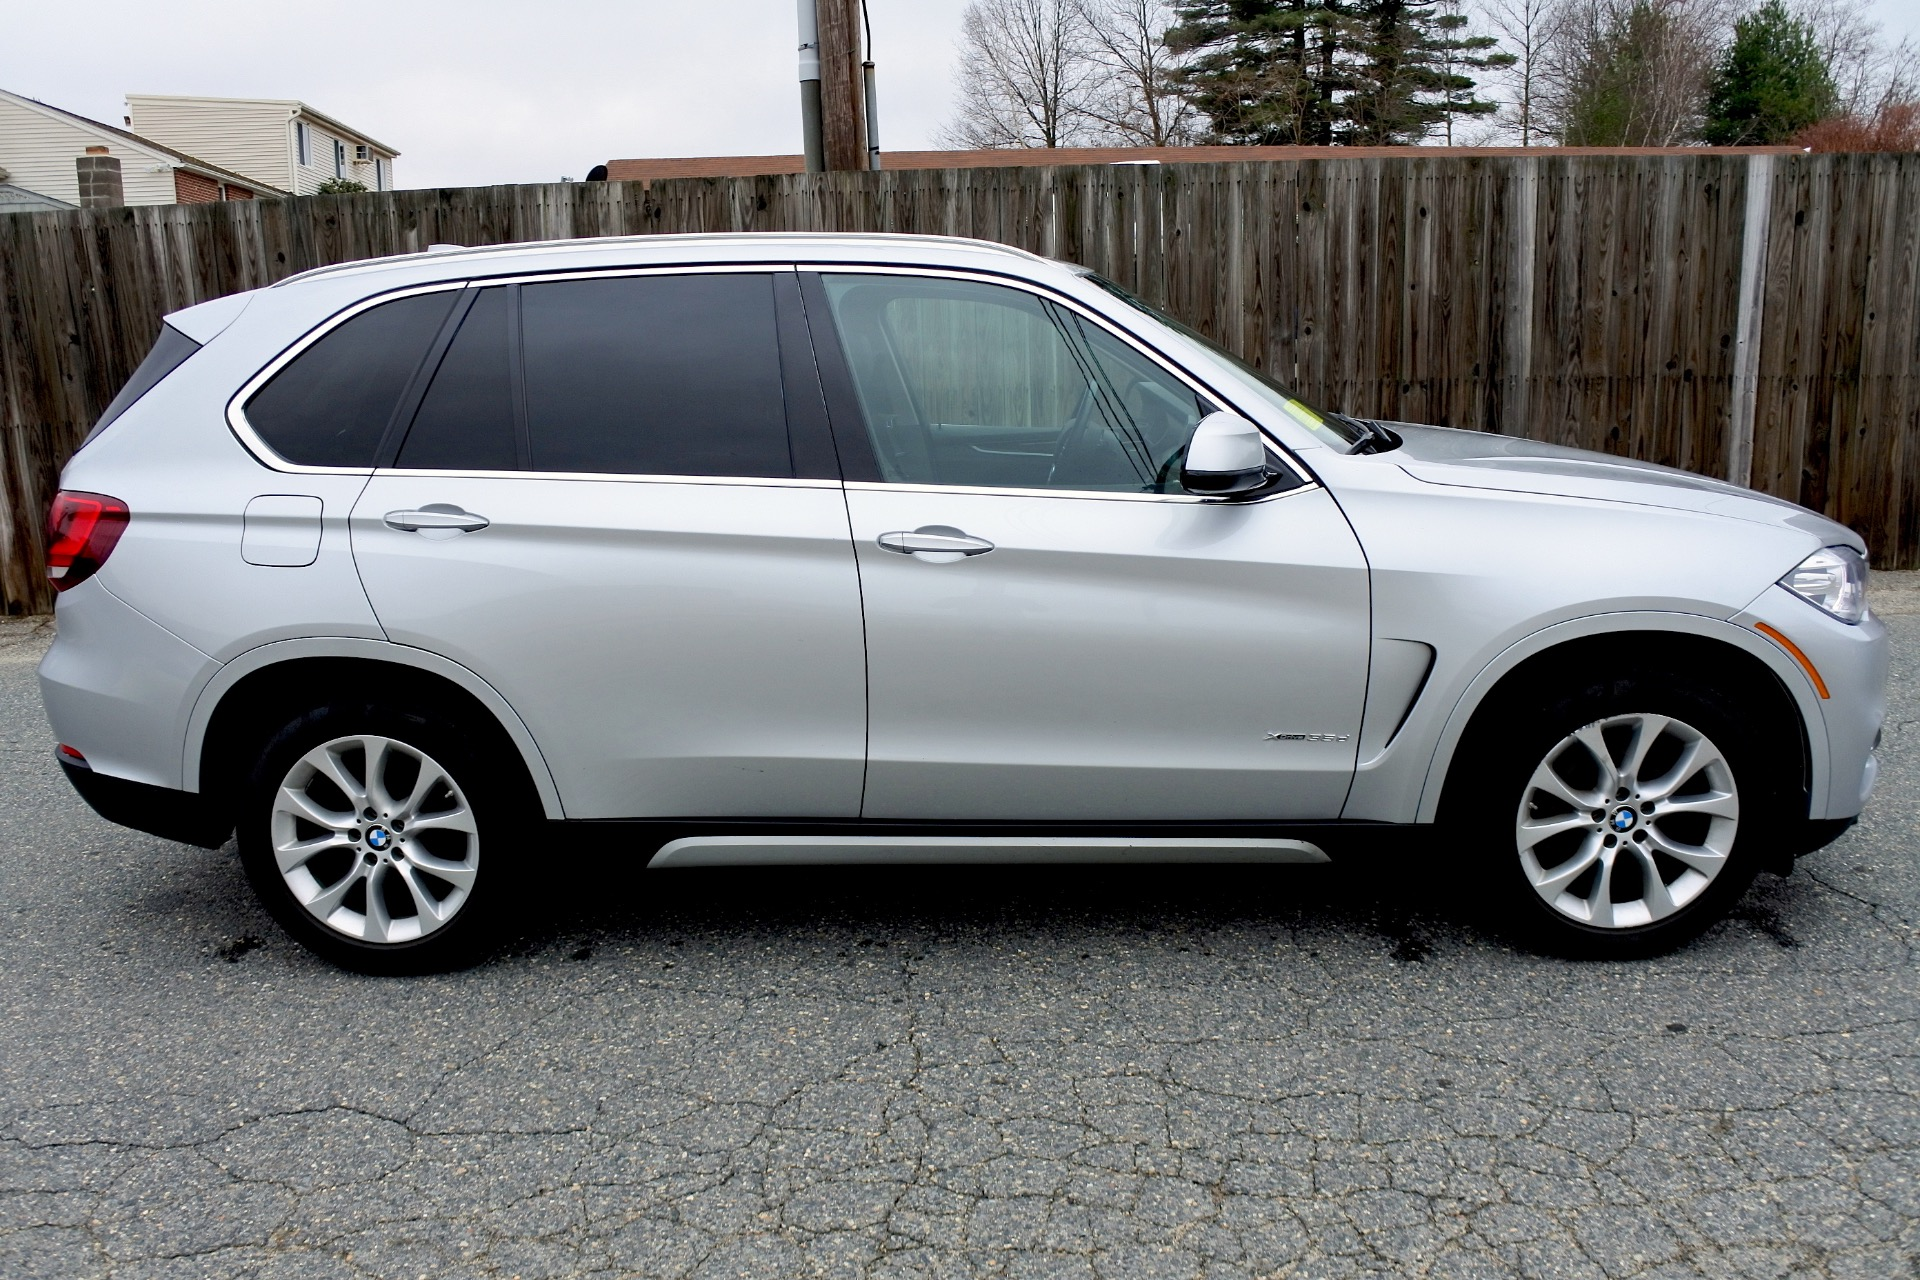 Used 2015 BMW X5 AWD 4dr xDrive35d Used 2015 BMW X5 AWD 4dr xDrive35d for sale  at Metro West Motorcars LLC in Shrewsbury MA 6